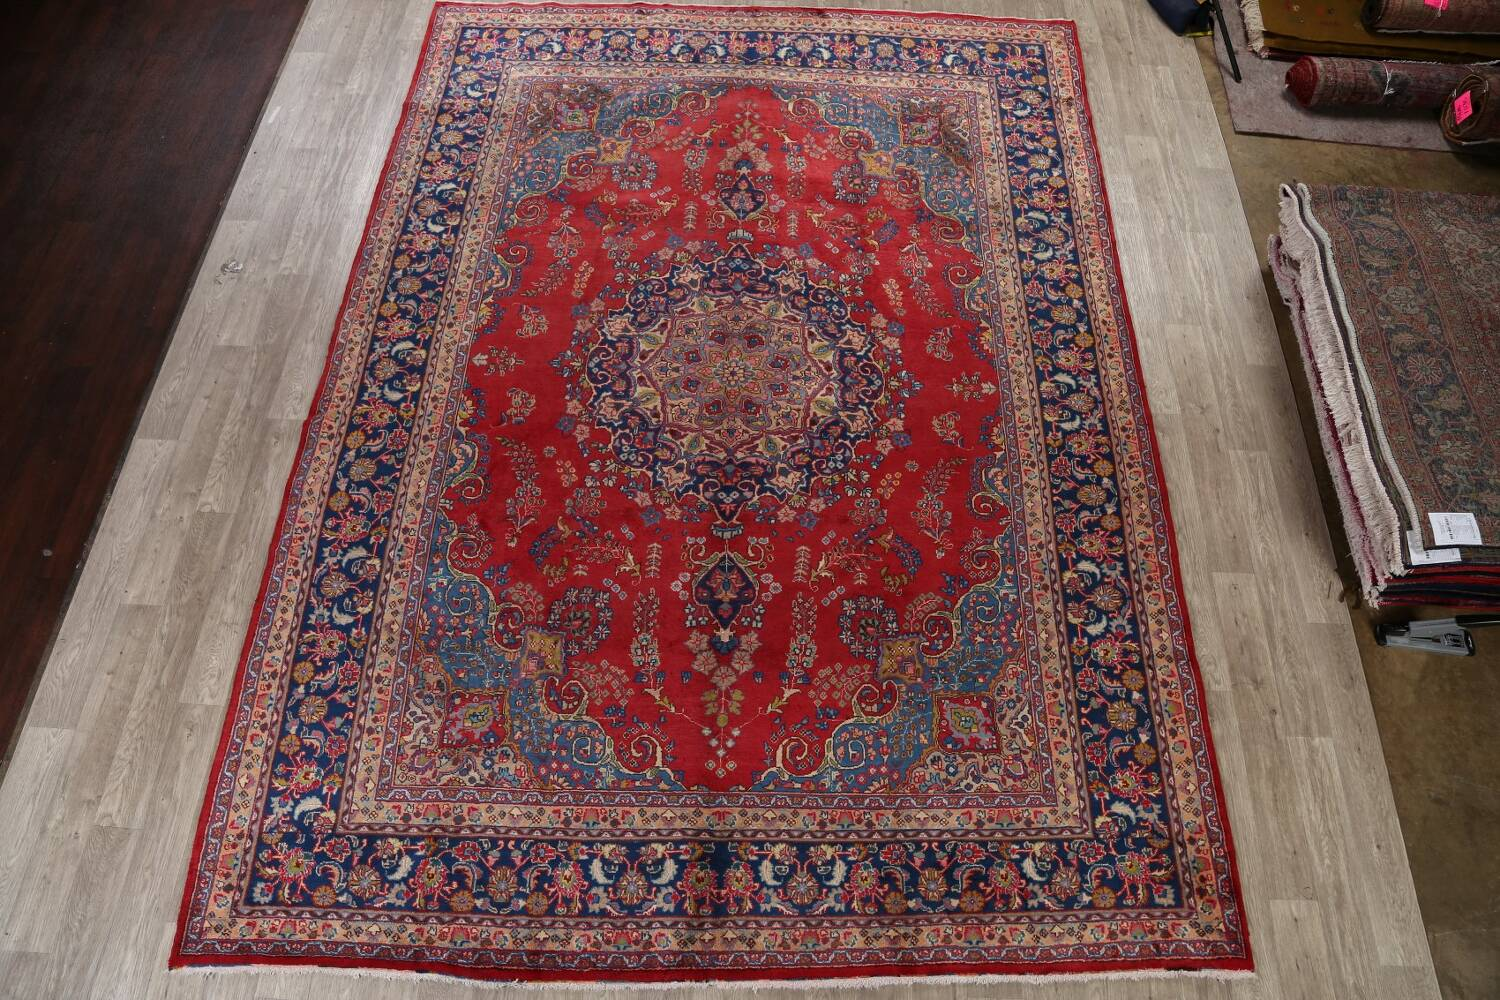 Vintage Floral Red Mashad Persian Area Rug 9x13 image 2